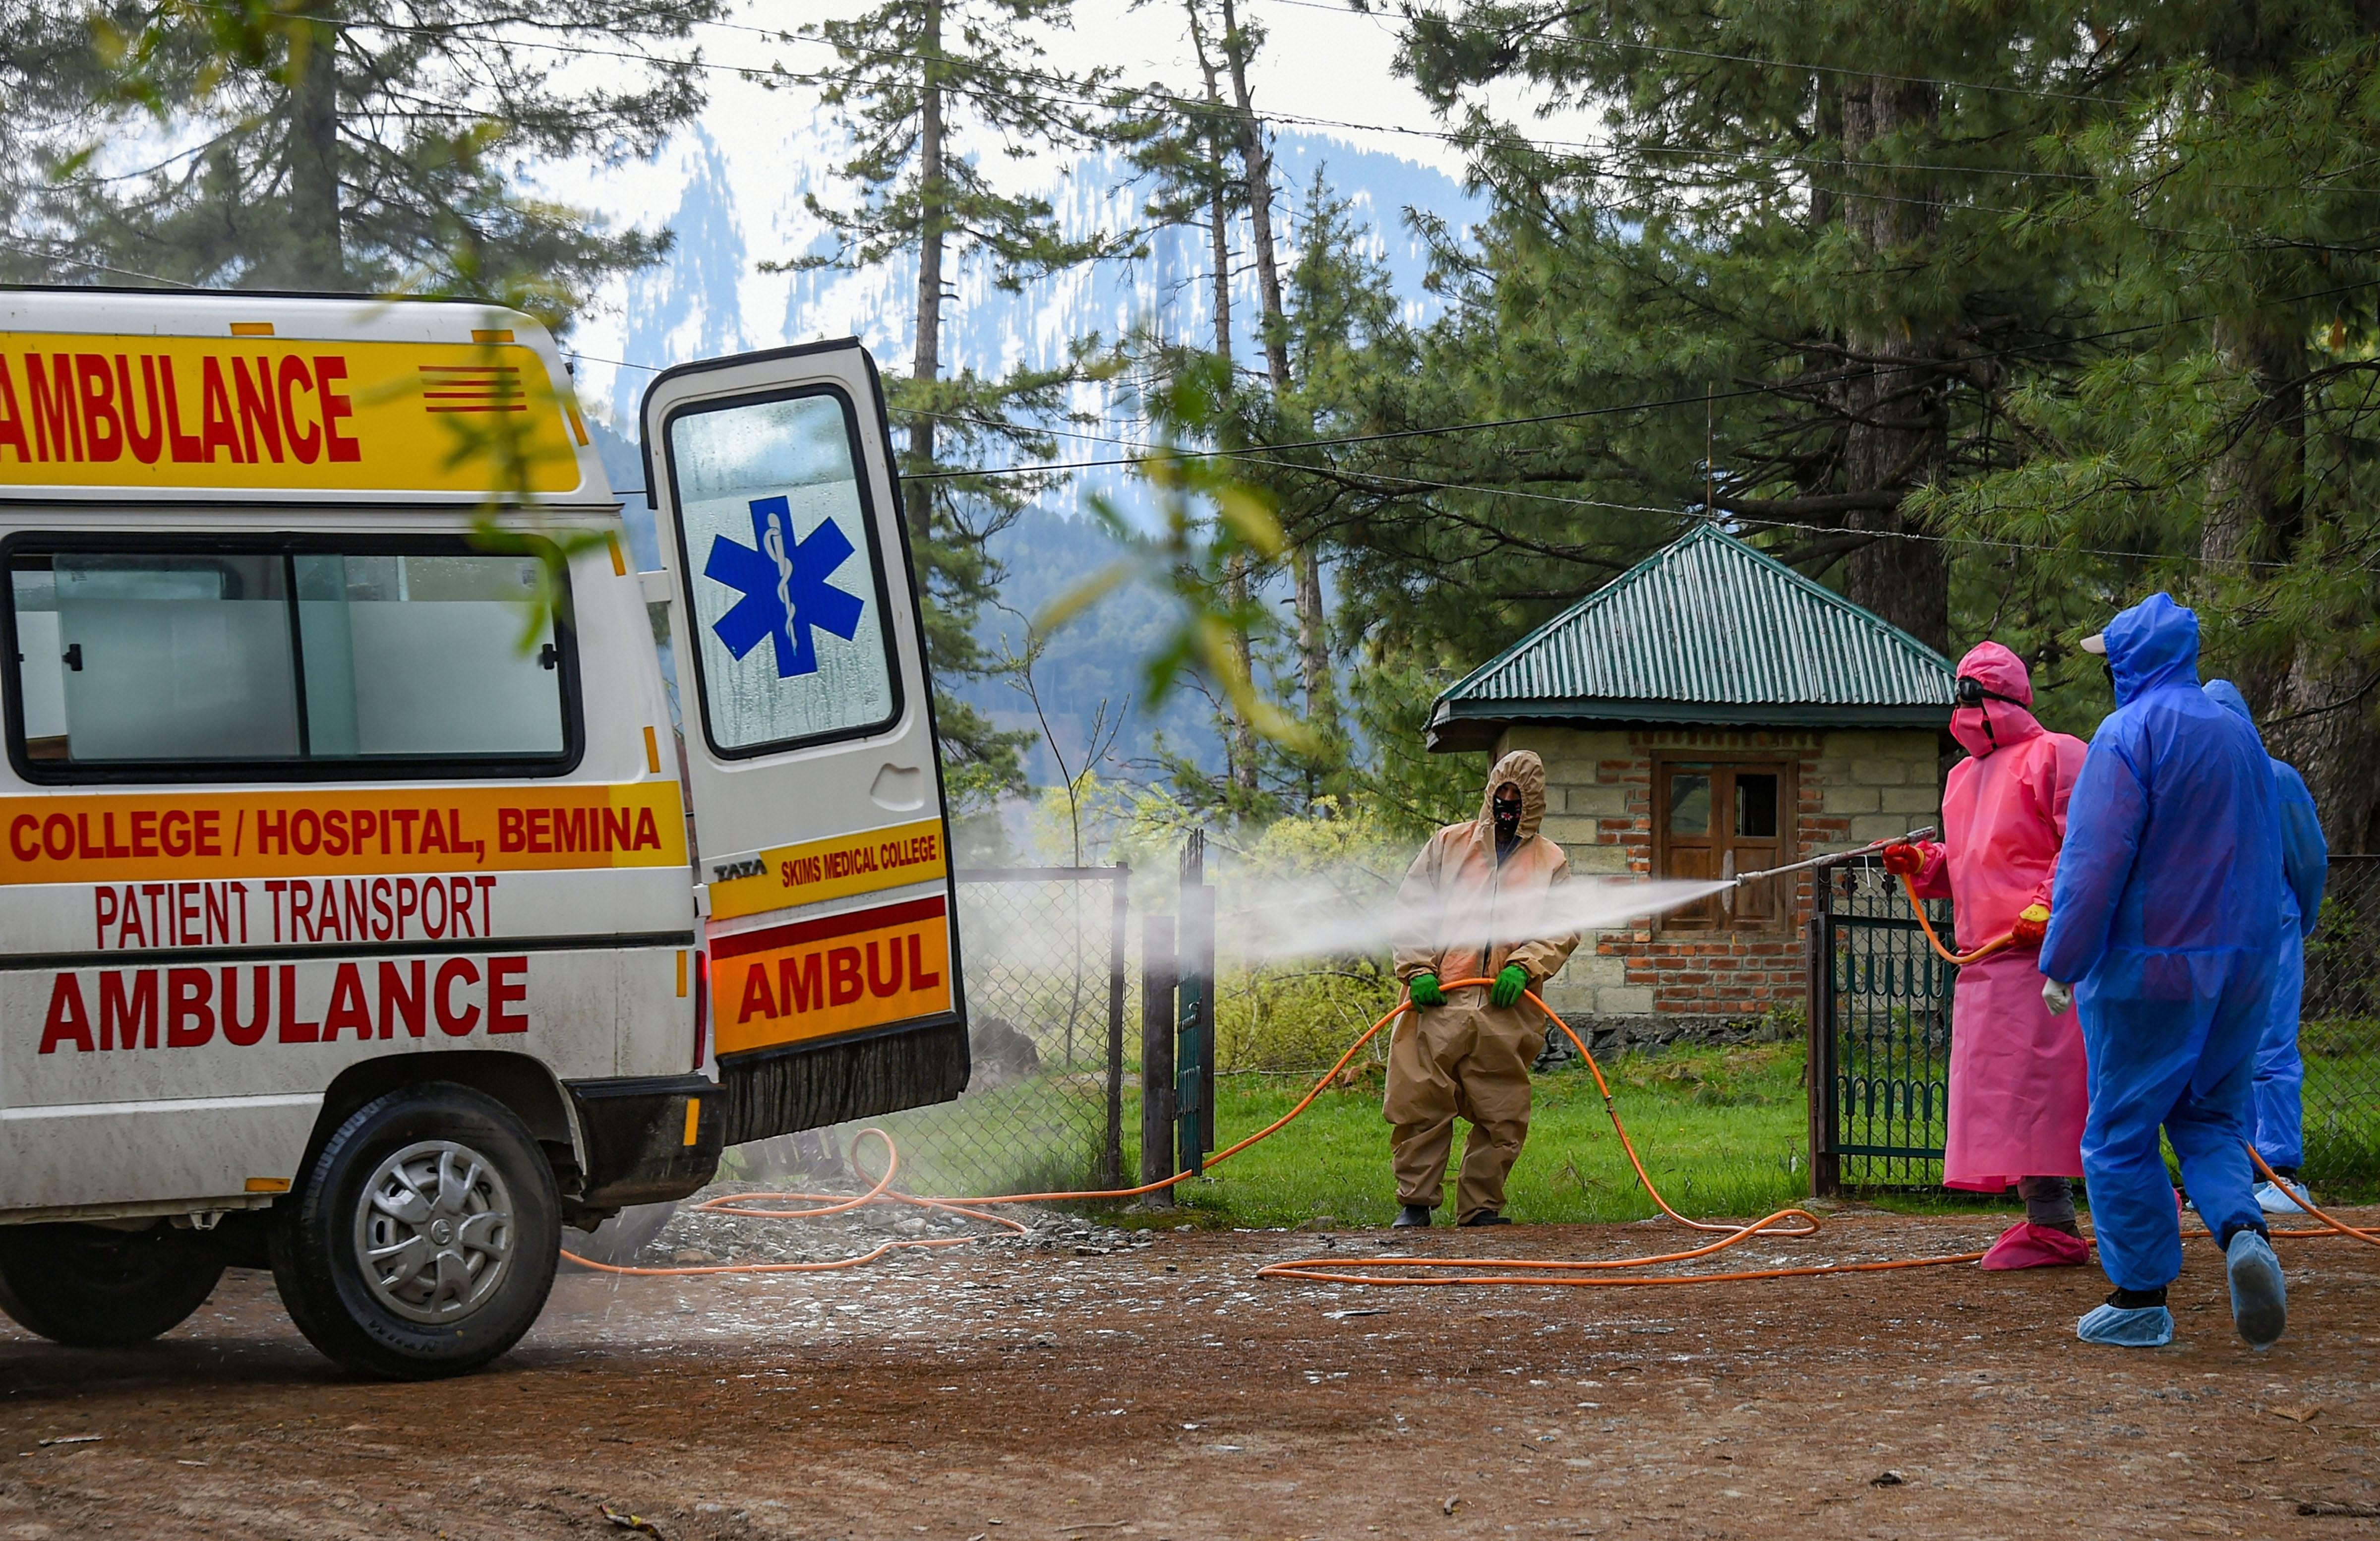 Health officials spray disinfectant on an ambulance